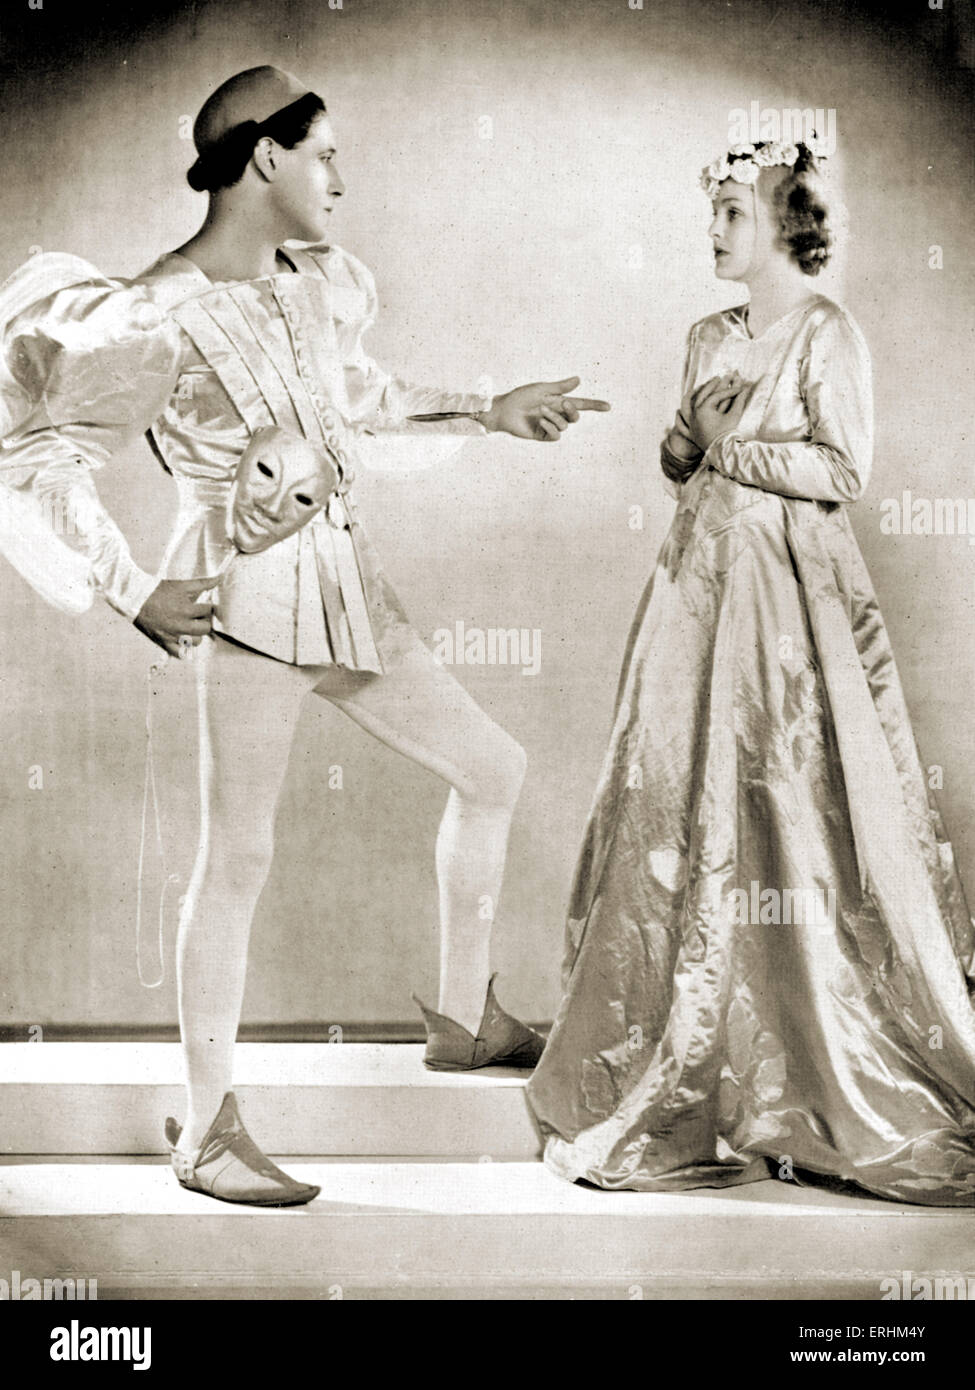 Ivor Novello as 'Romeo' & Joan Barry as 'Juliet' in the masque of 'Romeo & Juliet', - Stock Image